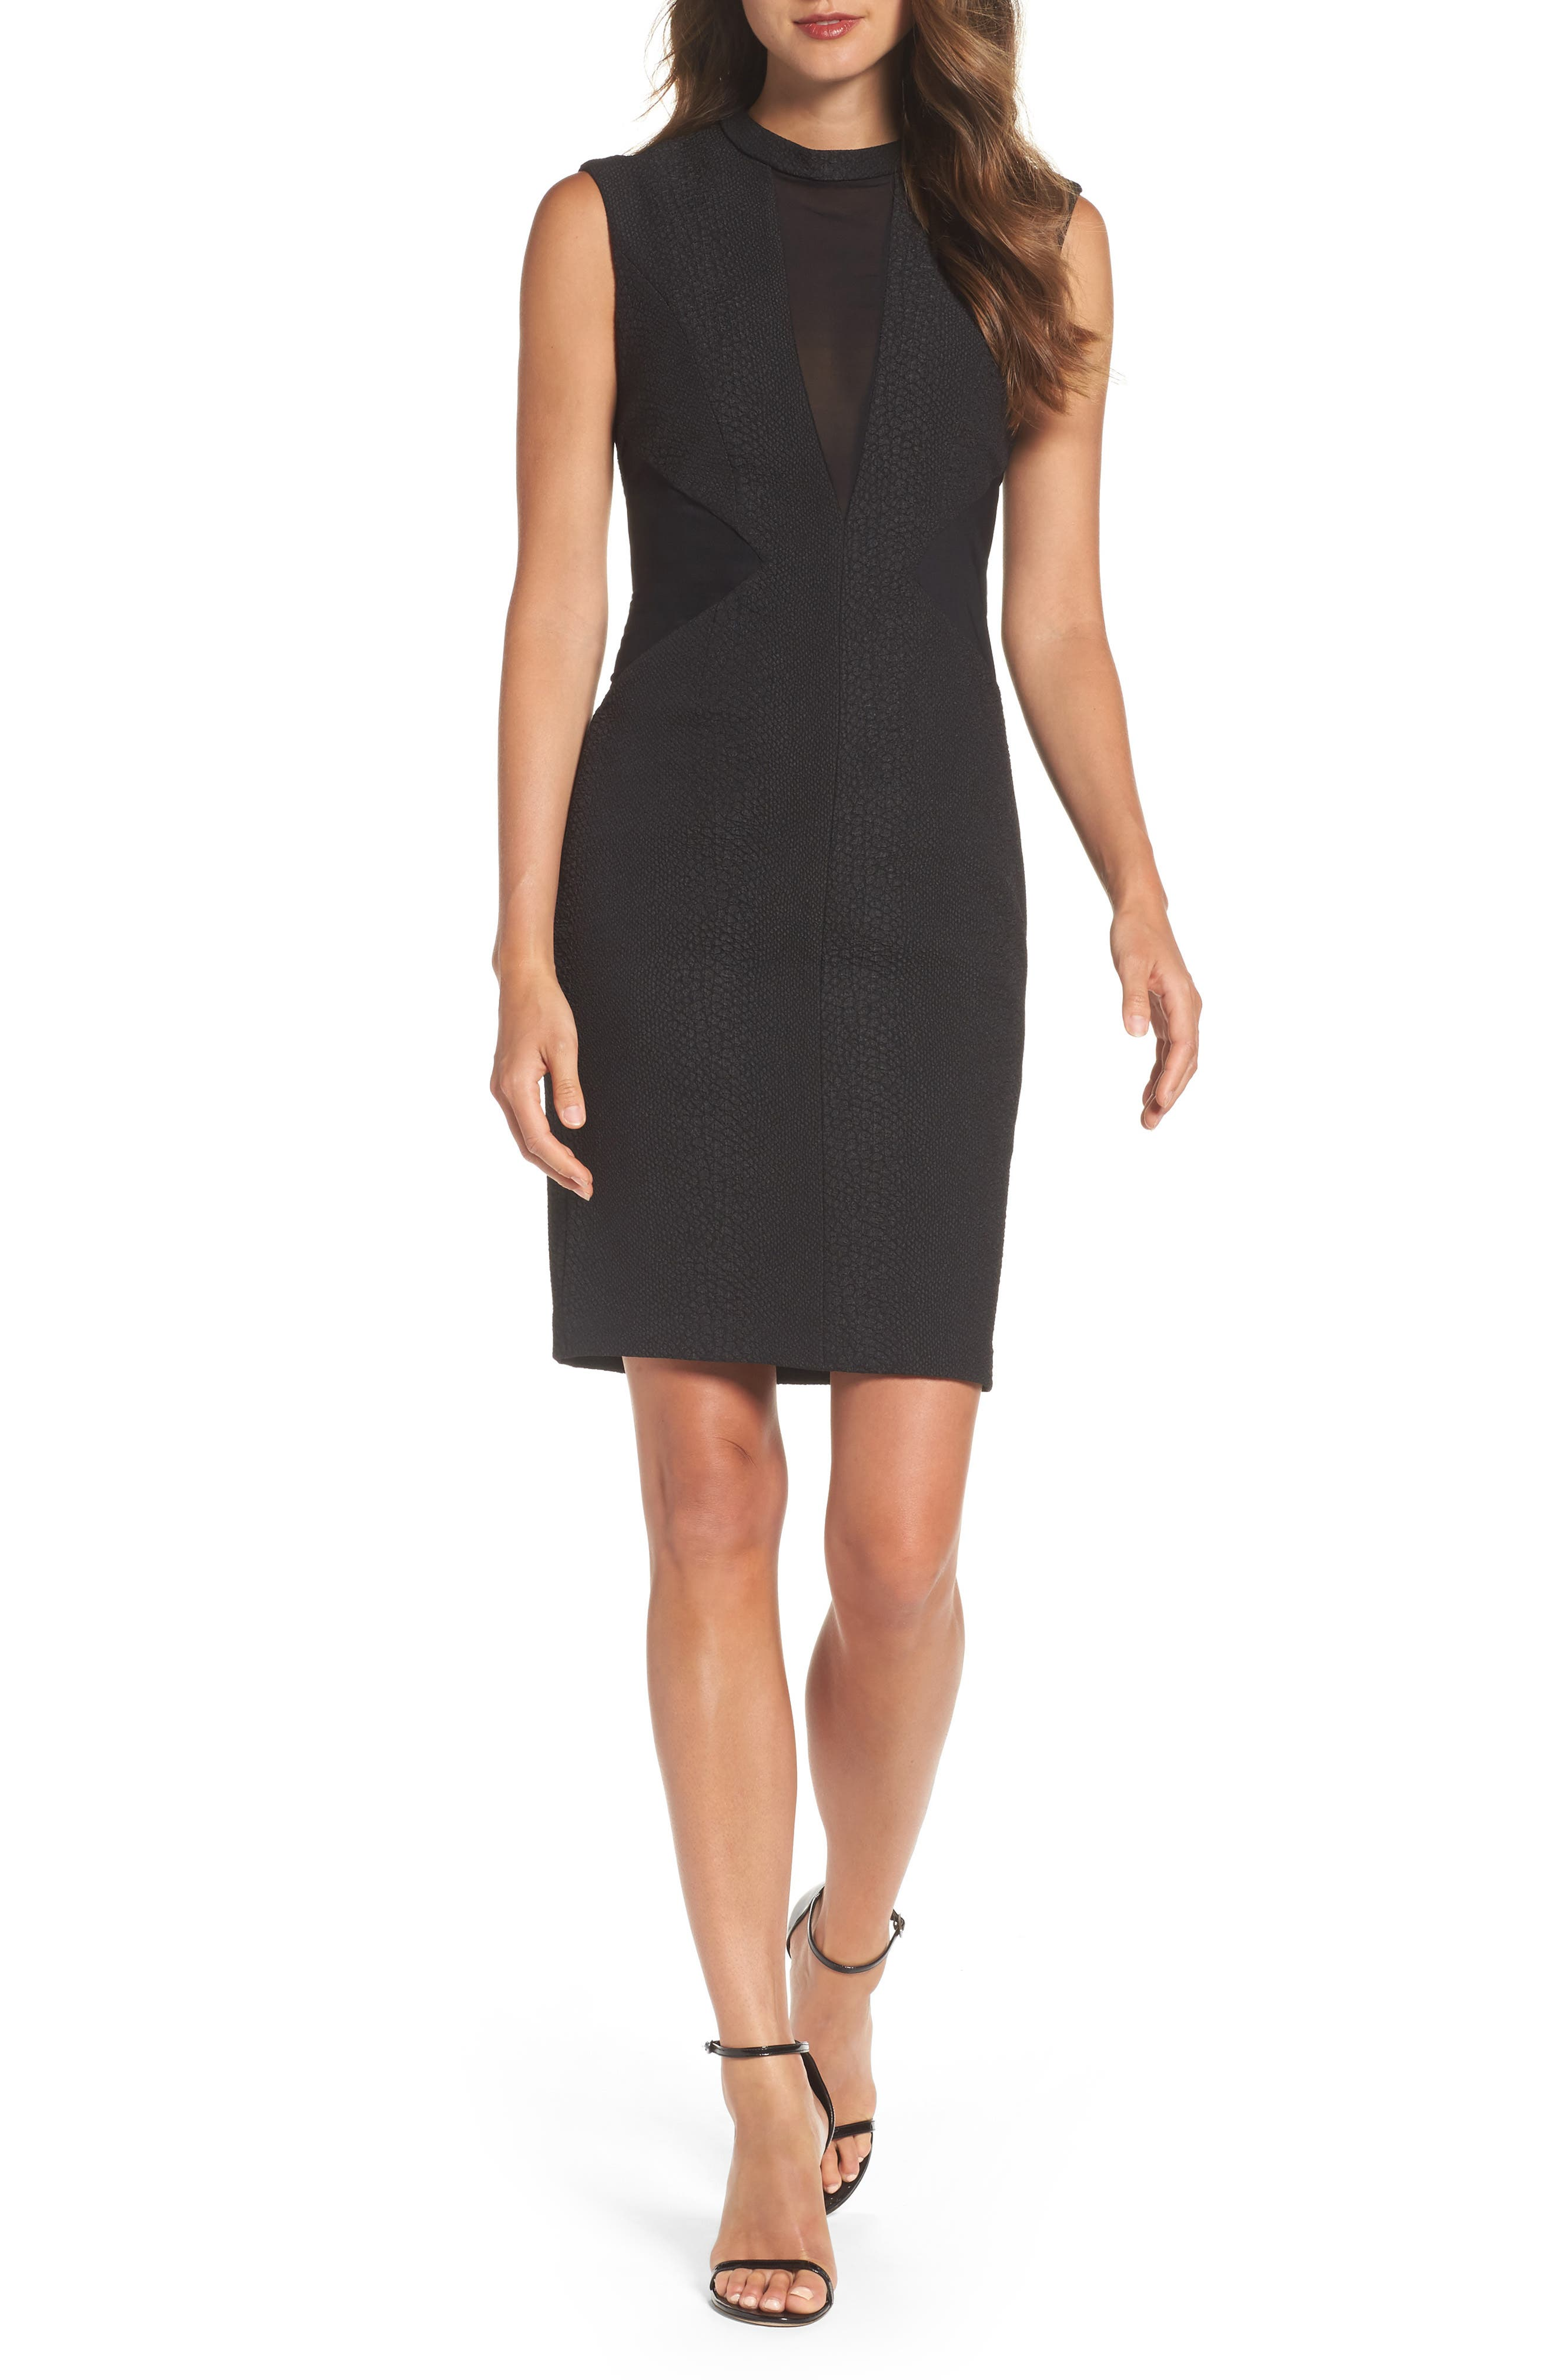 Main Image - Bardot Croc Texture Panel Dress